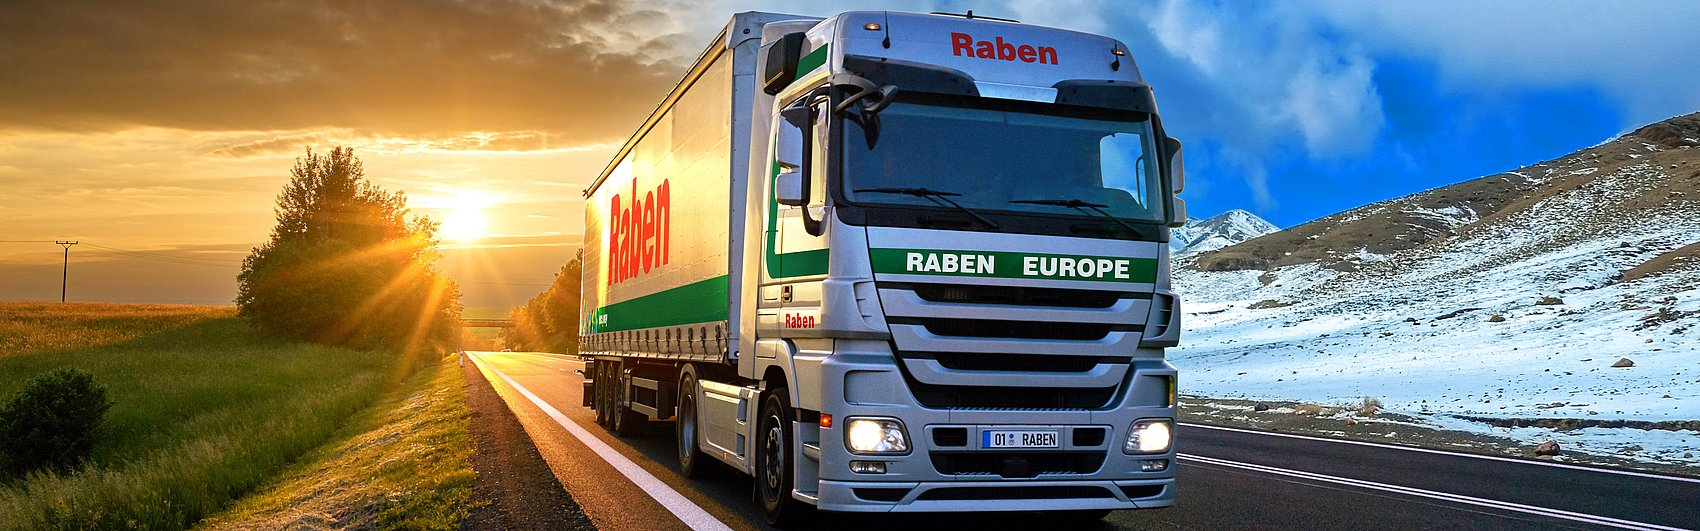 csm_KV_2019_Raben_Group_Europe_68553b4153.jpg